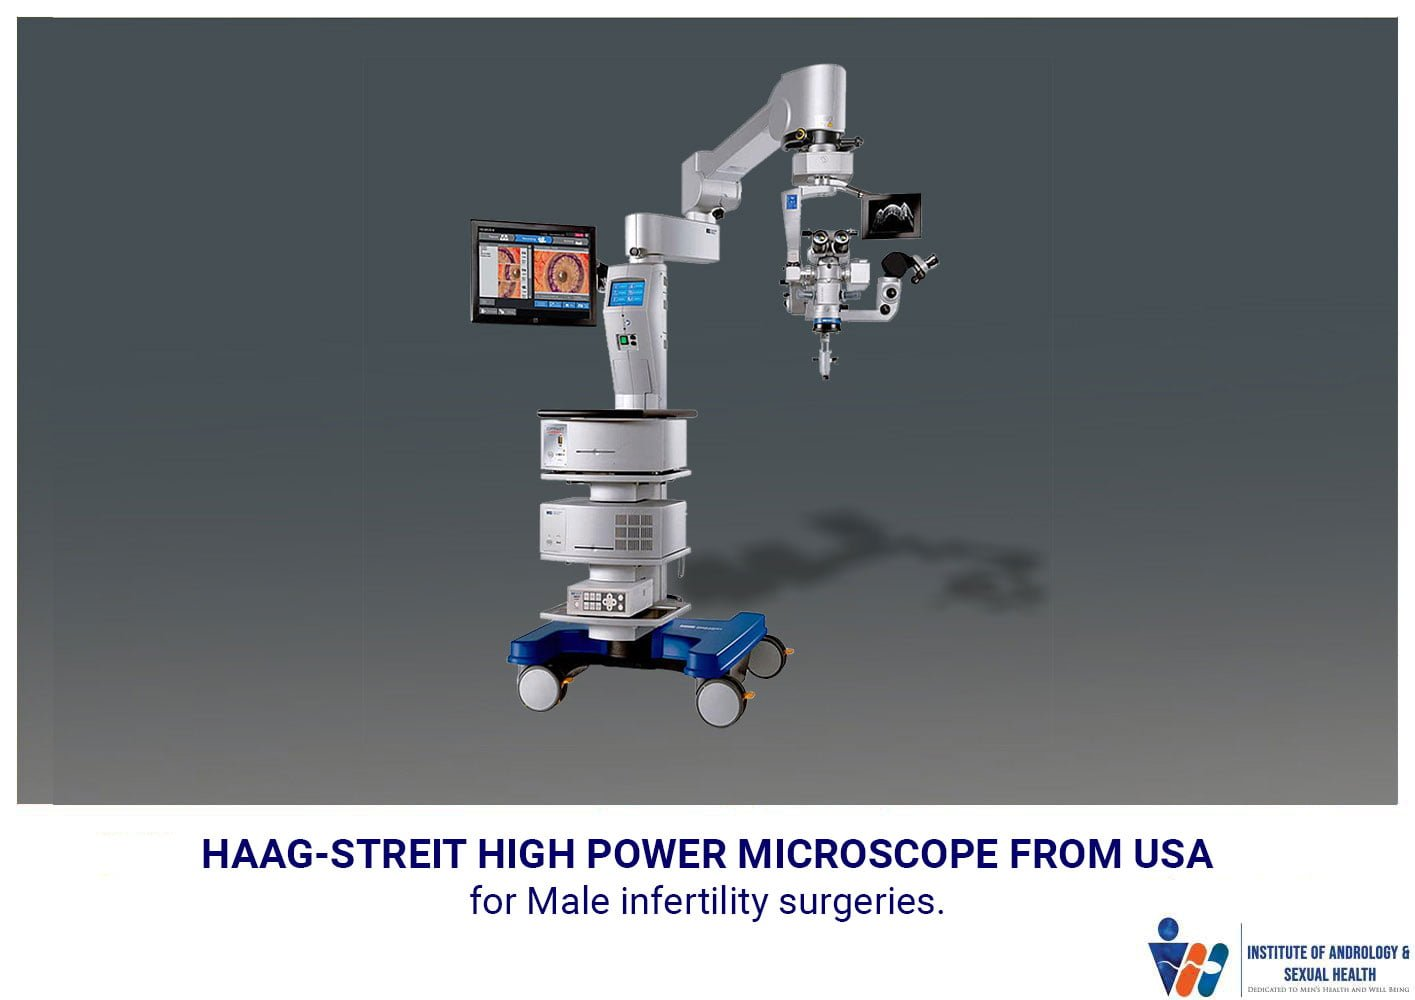 Haag-Streit High Power Microscope From USA for Male Infertility Surgeries.